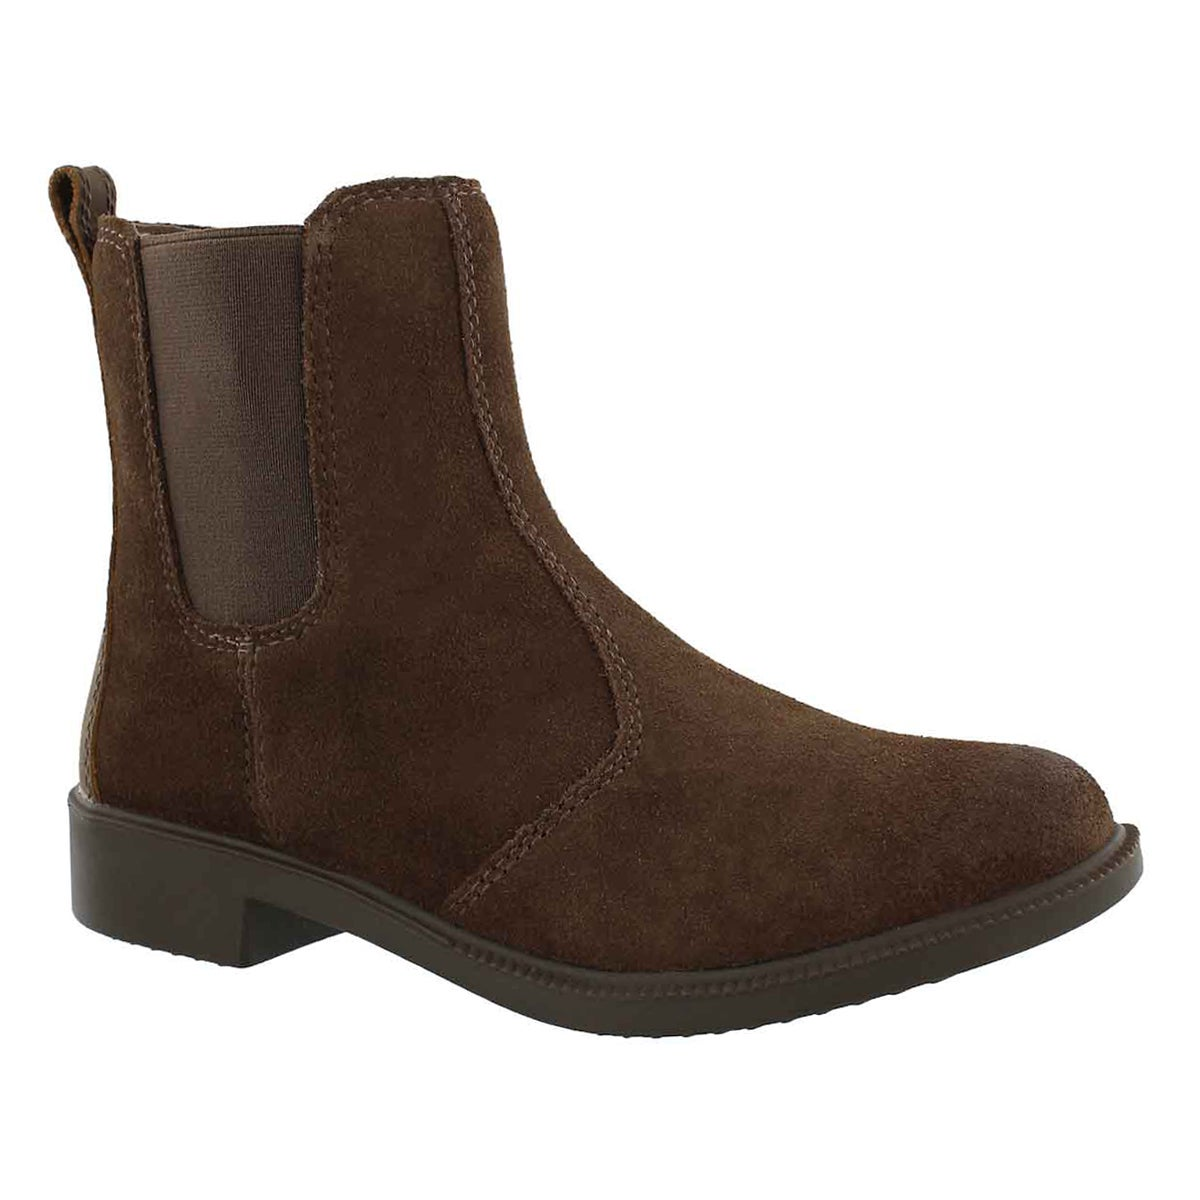 Women's BRIA gold waterproof chelsea boots